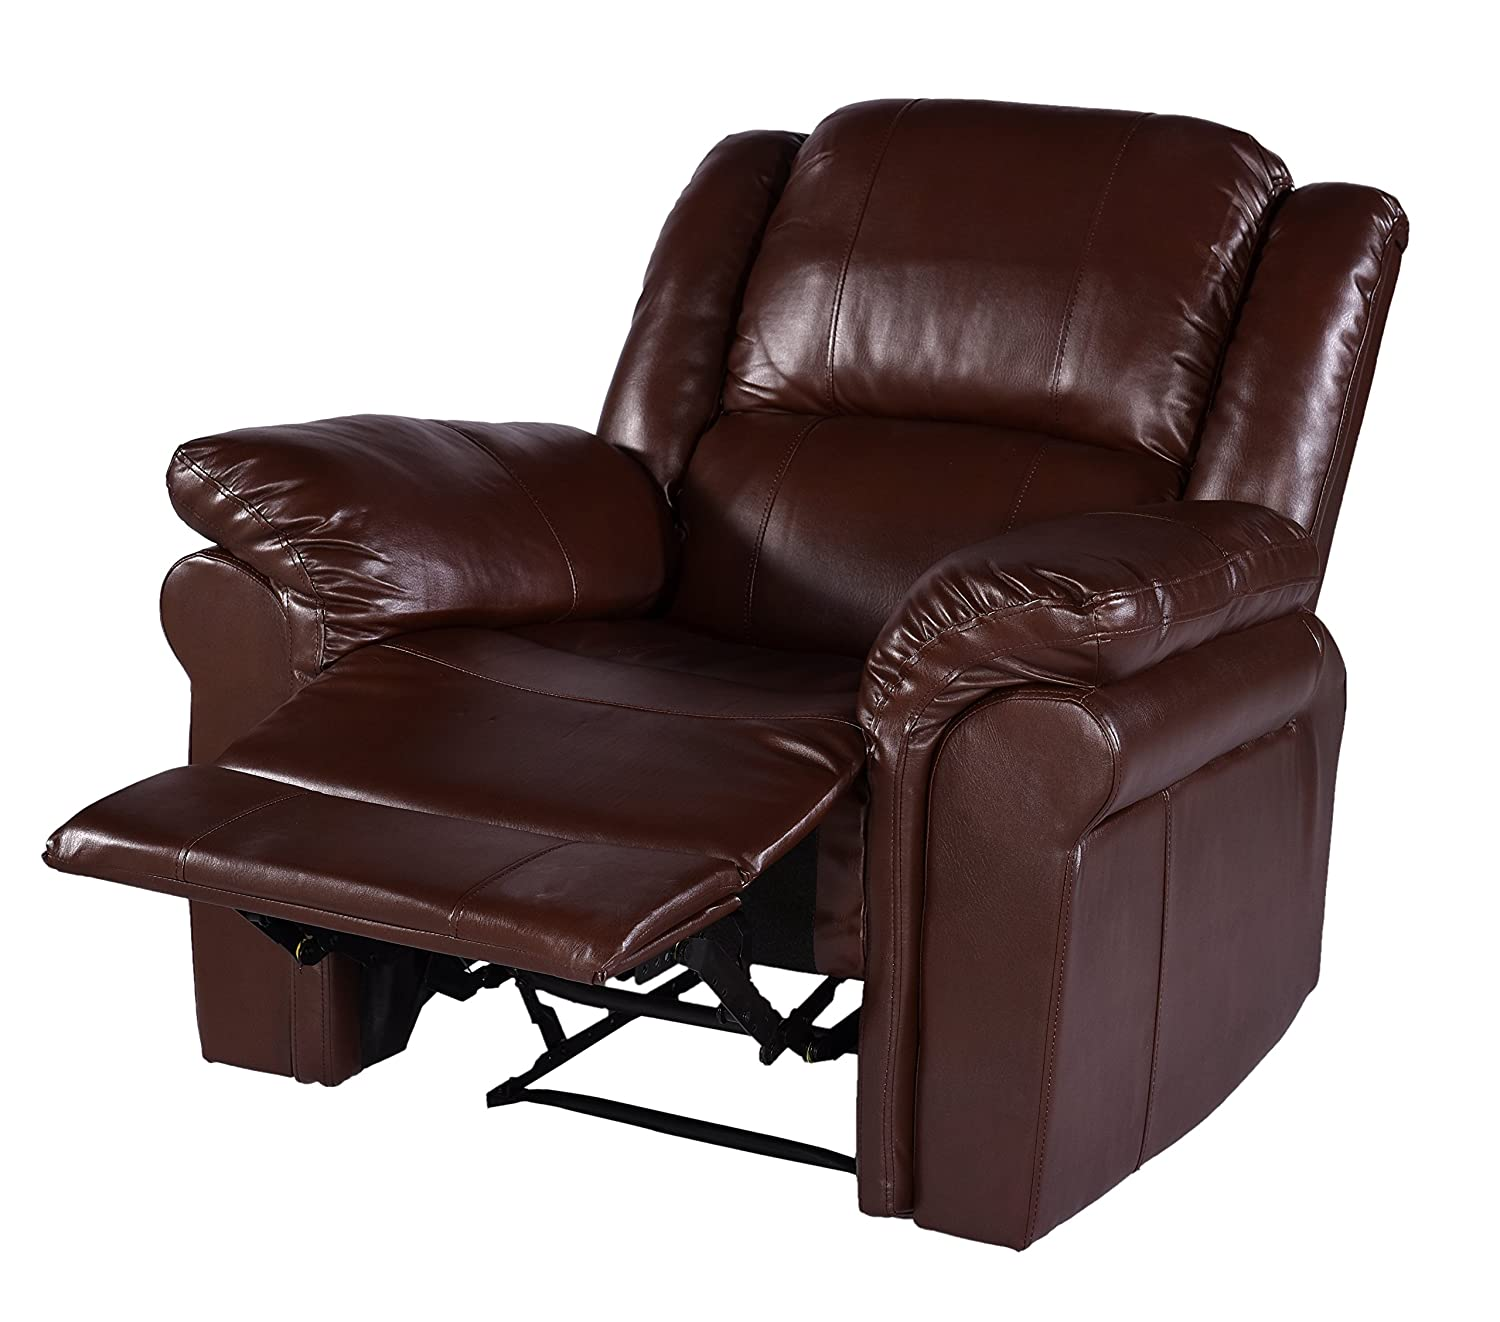 DeckUp Pallazzo Single Recliner